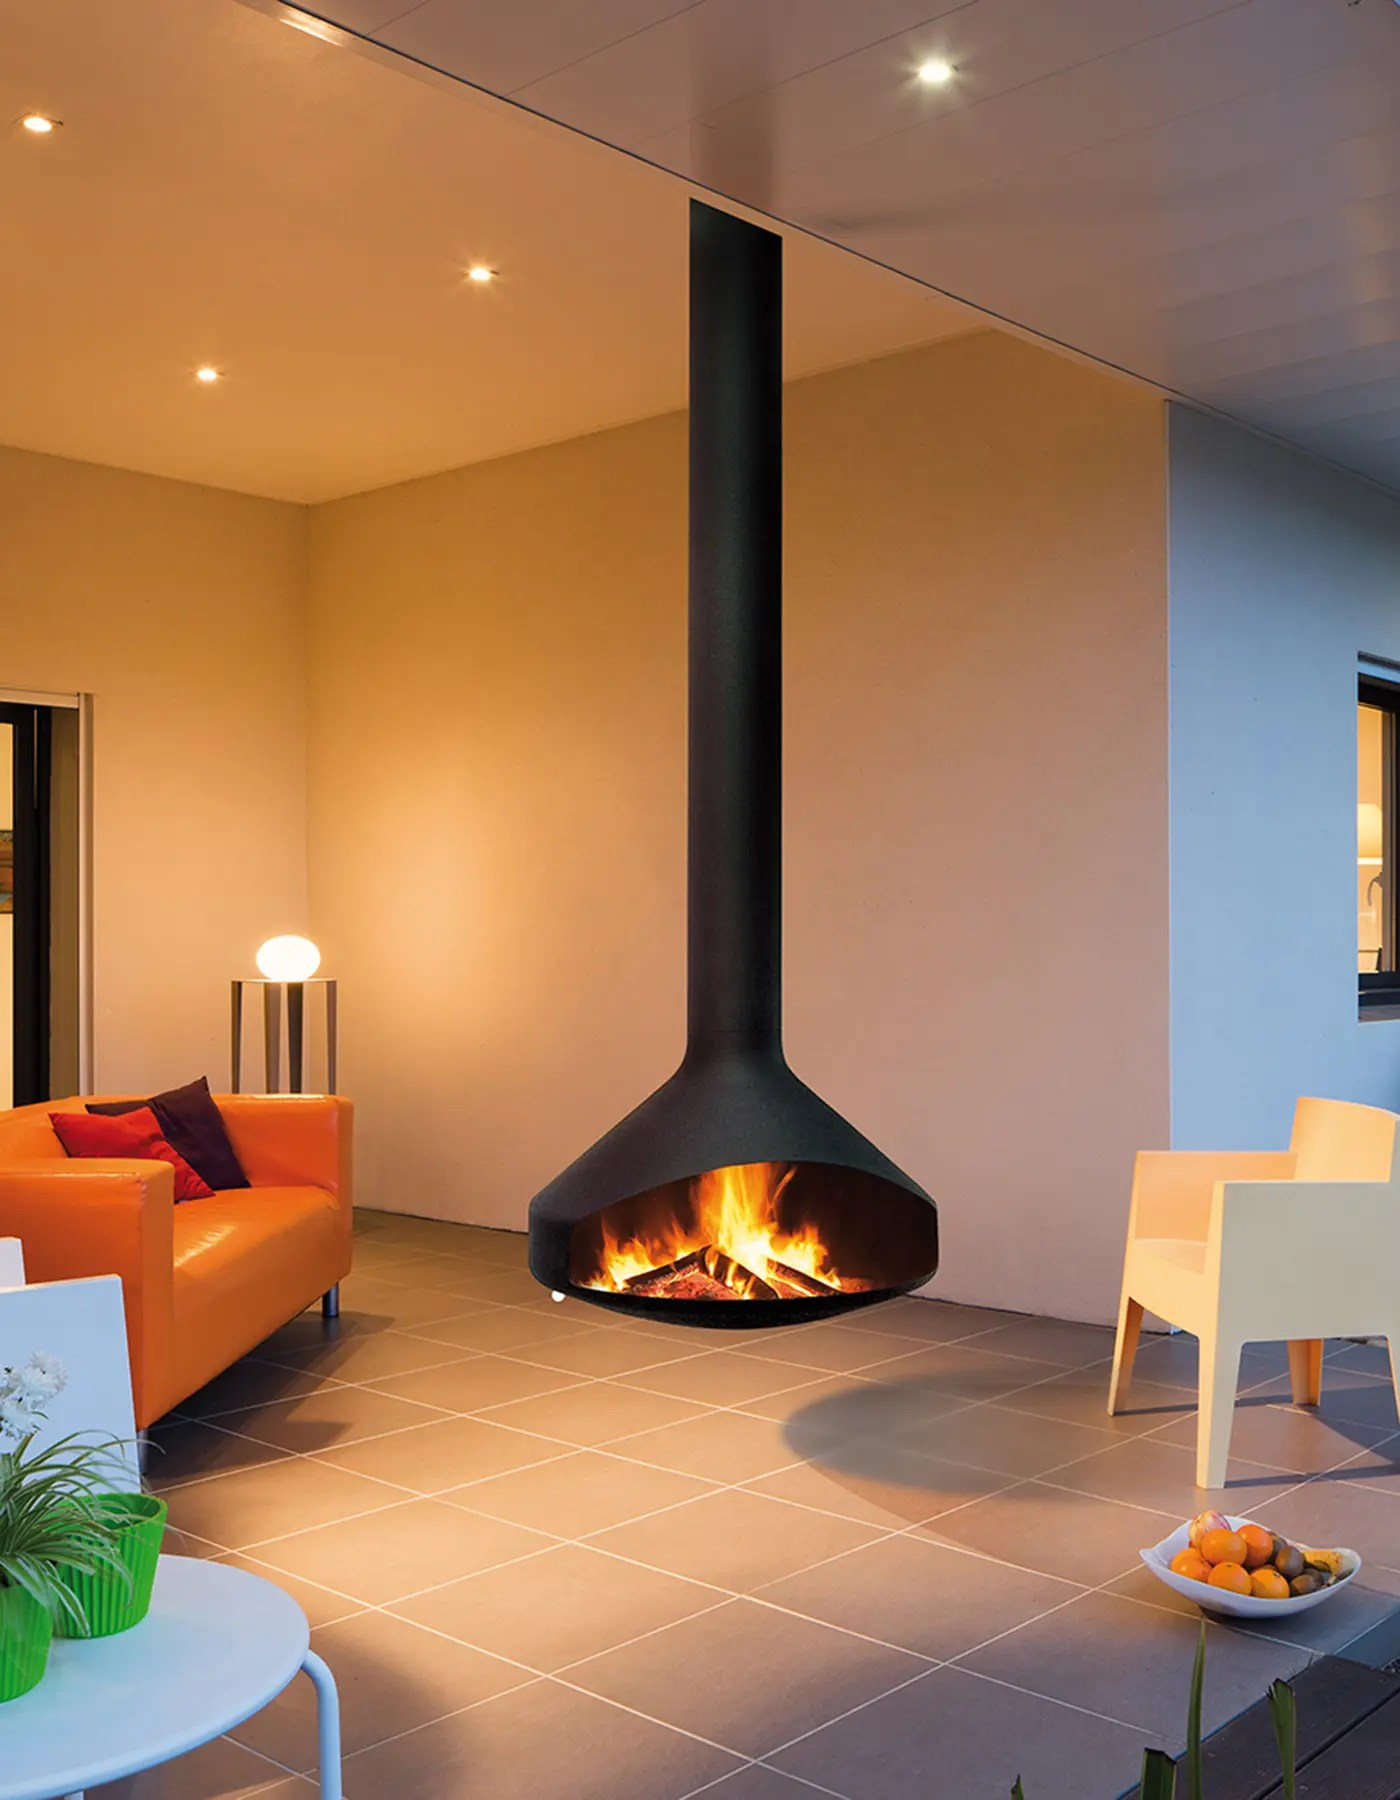 Cheminee Francaise Ergofocus Outdoor By Focus Fires Suspended Outdoor Fireplace